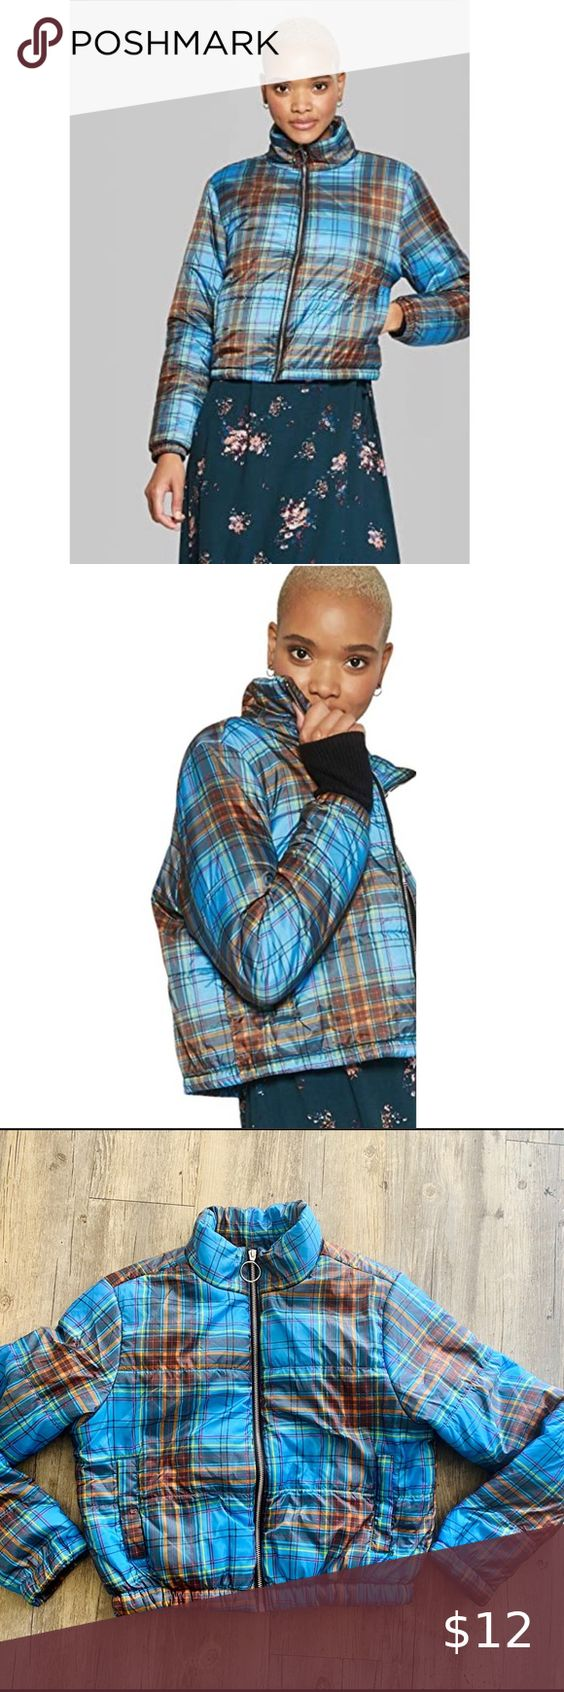 Wild Fable Blue Plaid Puffer Coat Blue Plaid Puffer Coat Target Brand Size M Please Feel Free To Ask Me Any Qu Puffer Coat Red Puffer Jacket Black Puffy Coat [ 1692 x 564 Pixel ]